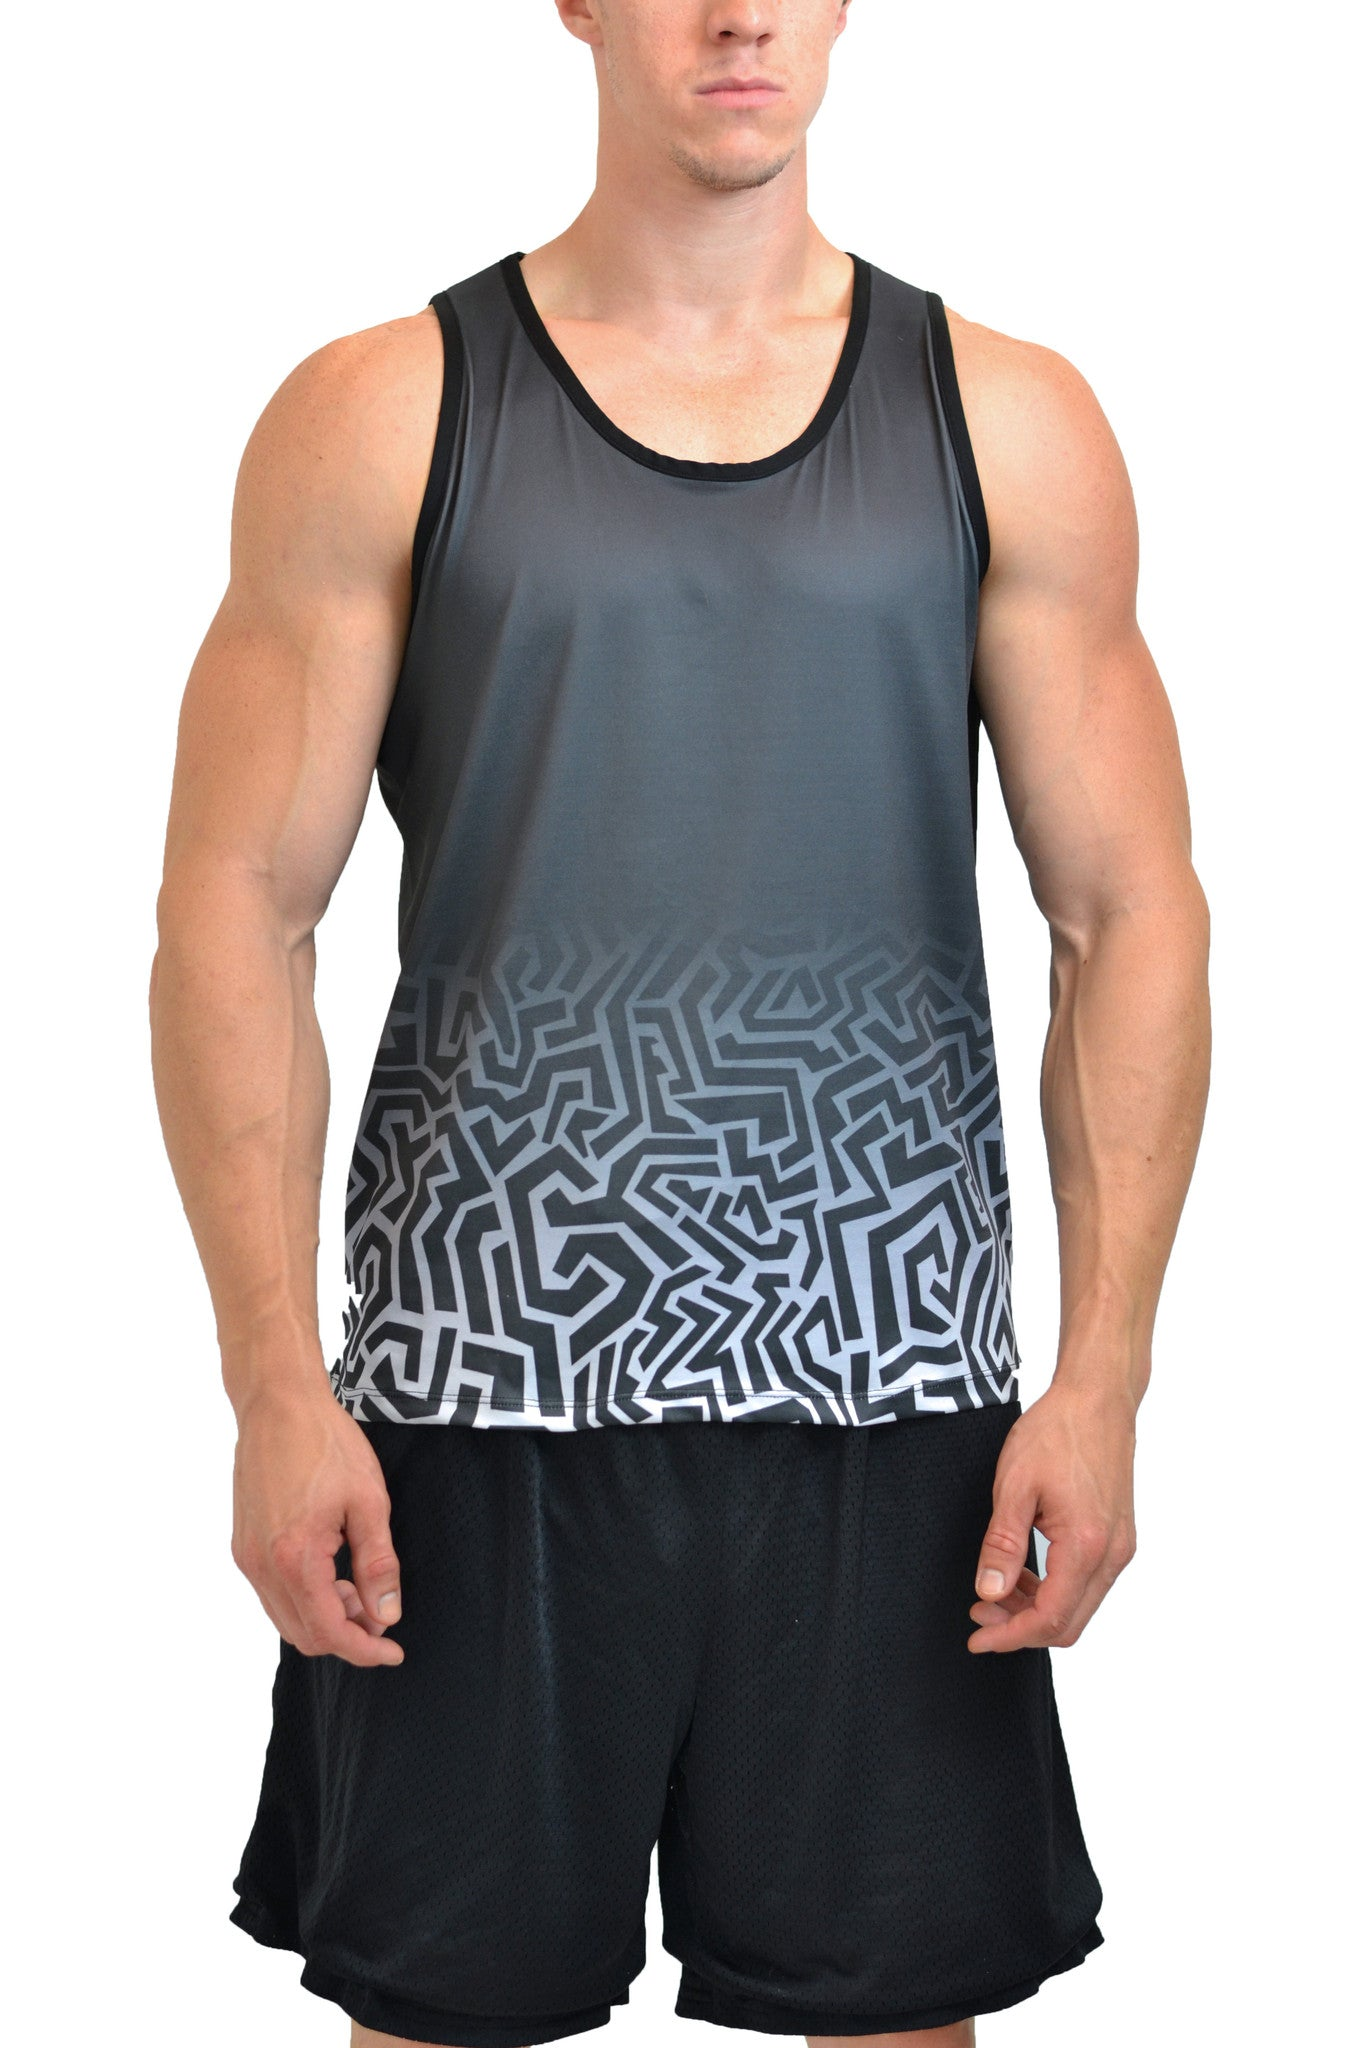 Men's Graphic Hex All Over Print Fitness Tank Top